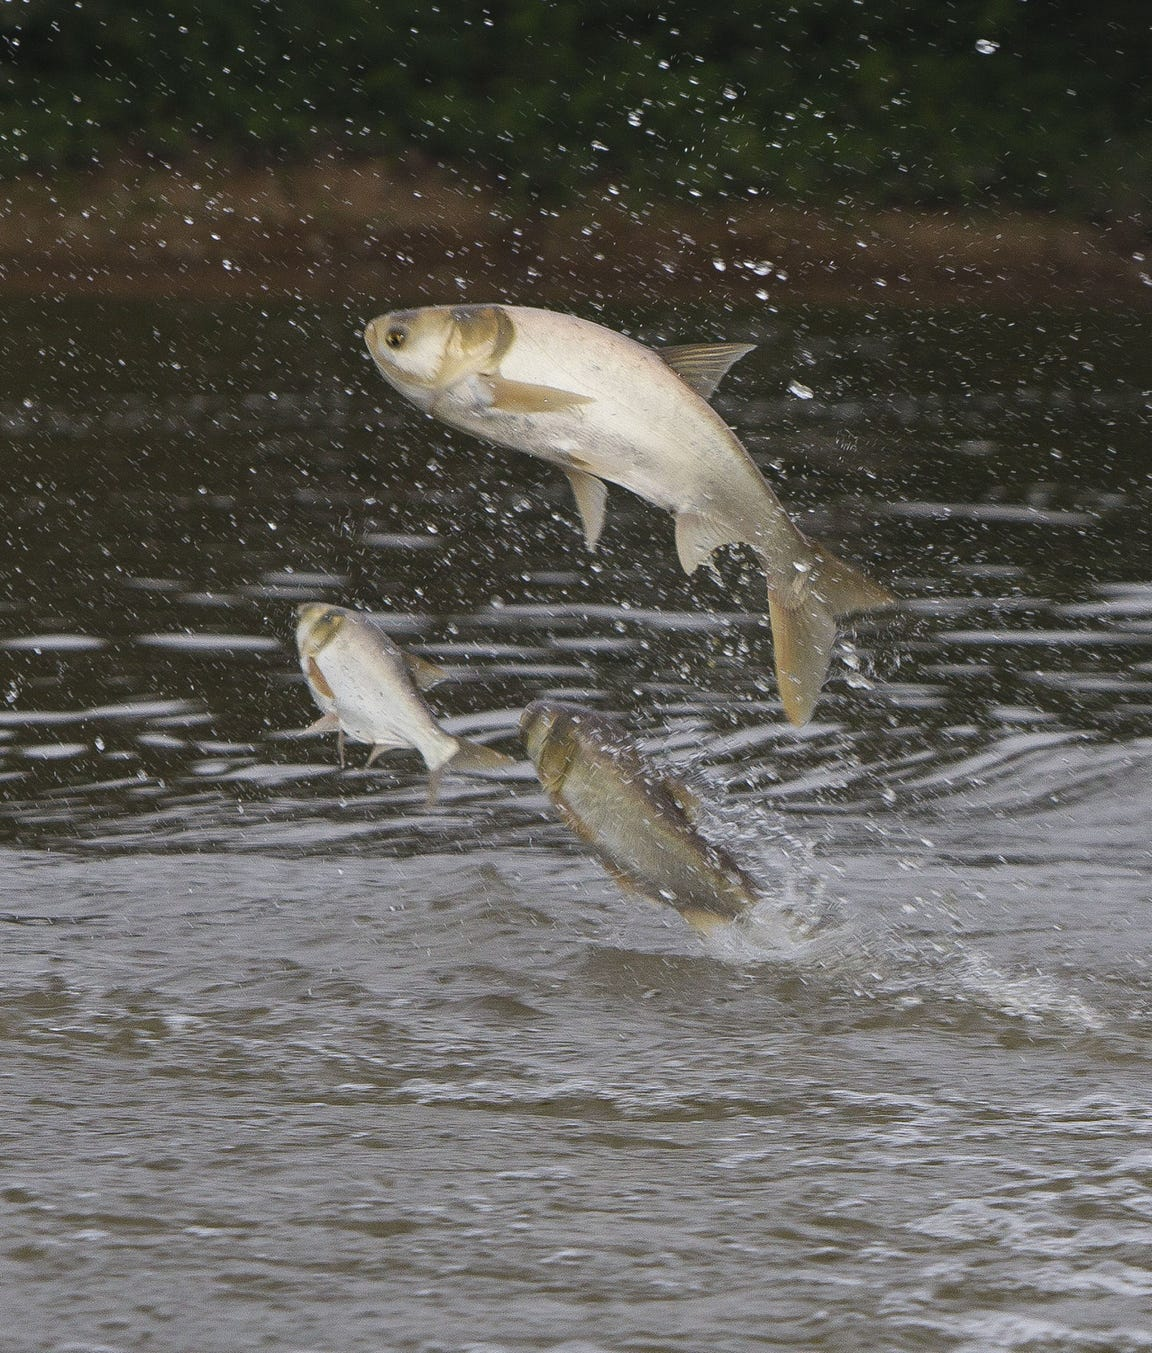 Silver carp jump out of the water near the retention area off of the Wabash River in West Lafayette, Indiana